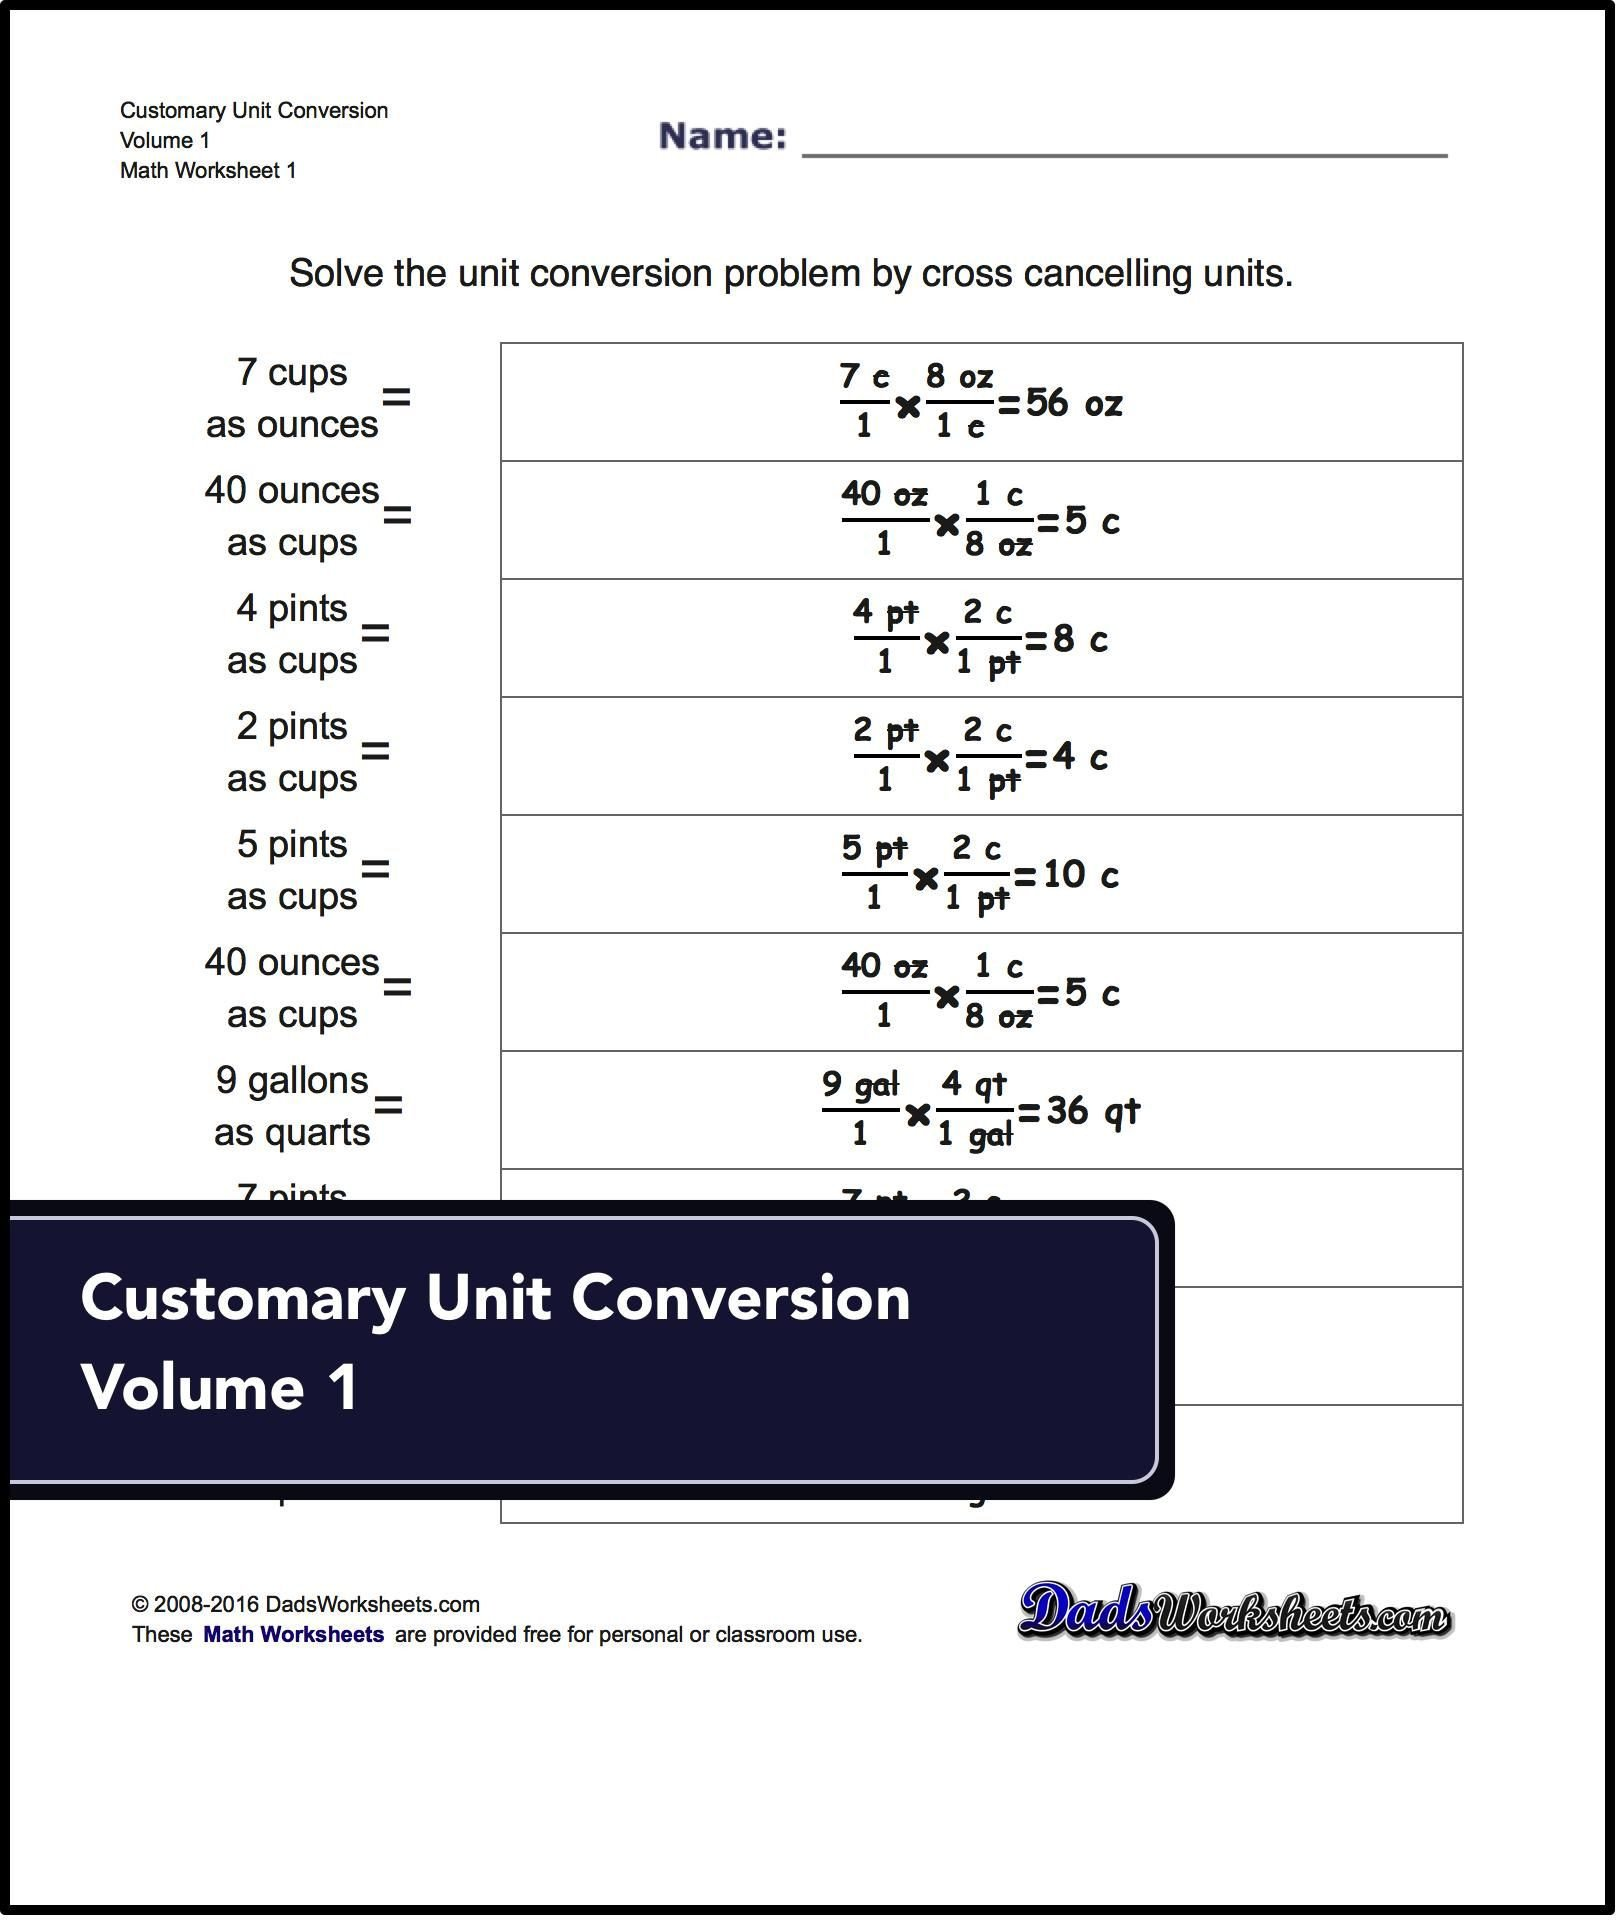 Customary Unit Conversion Worksheet Unit Conversion Worksheets for Converting Customary Volume